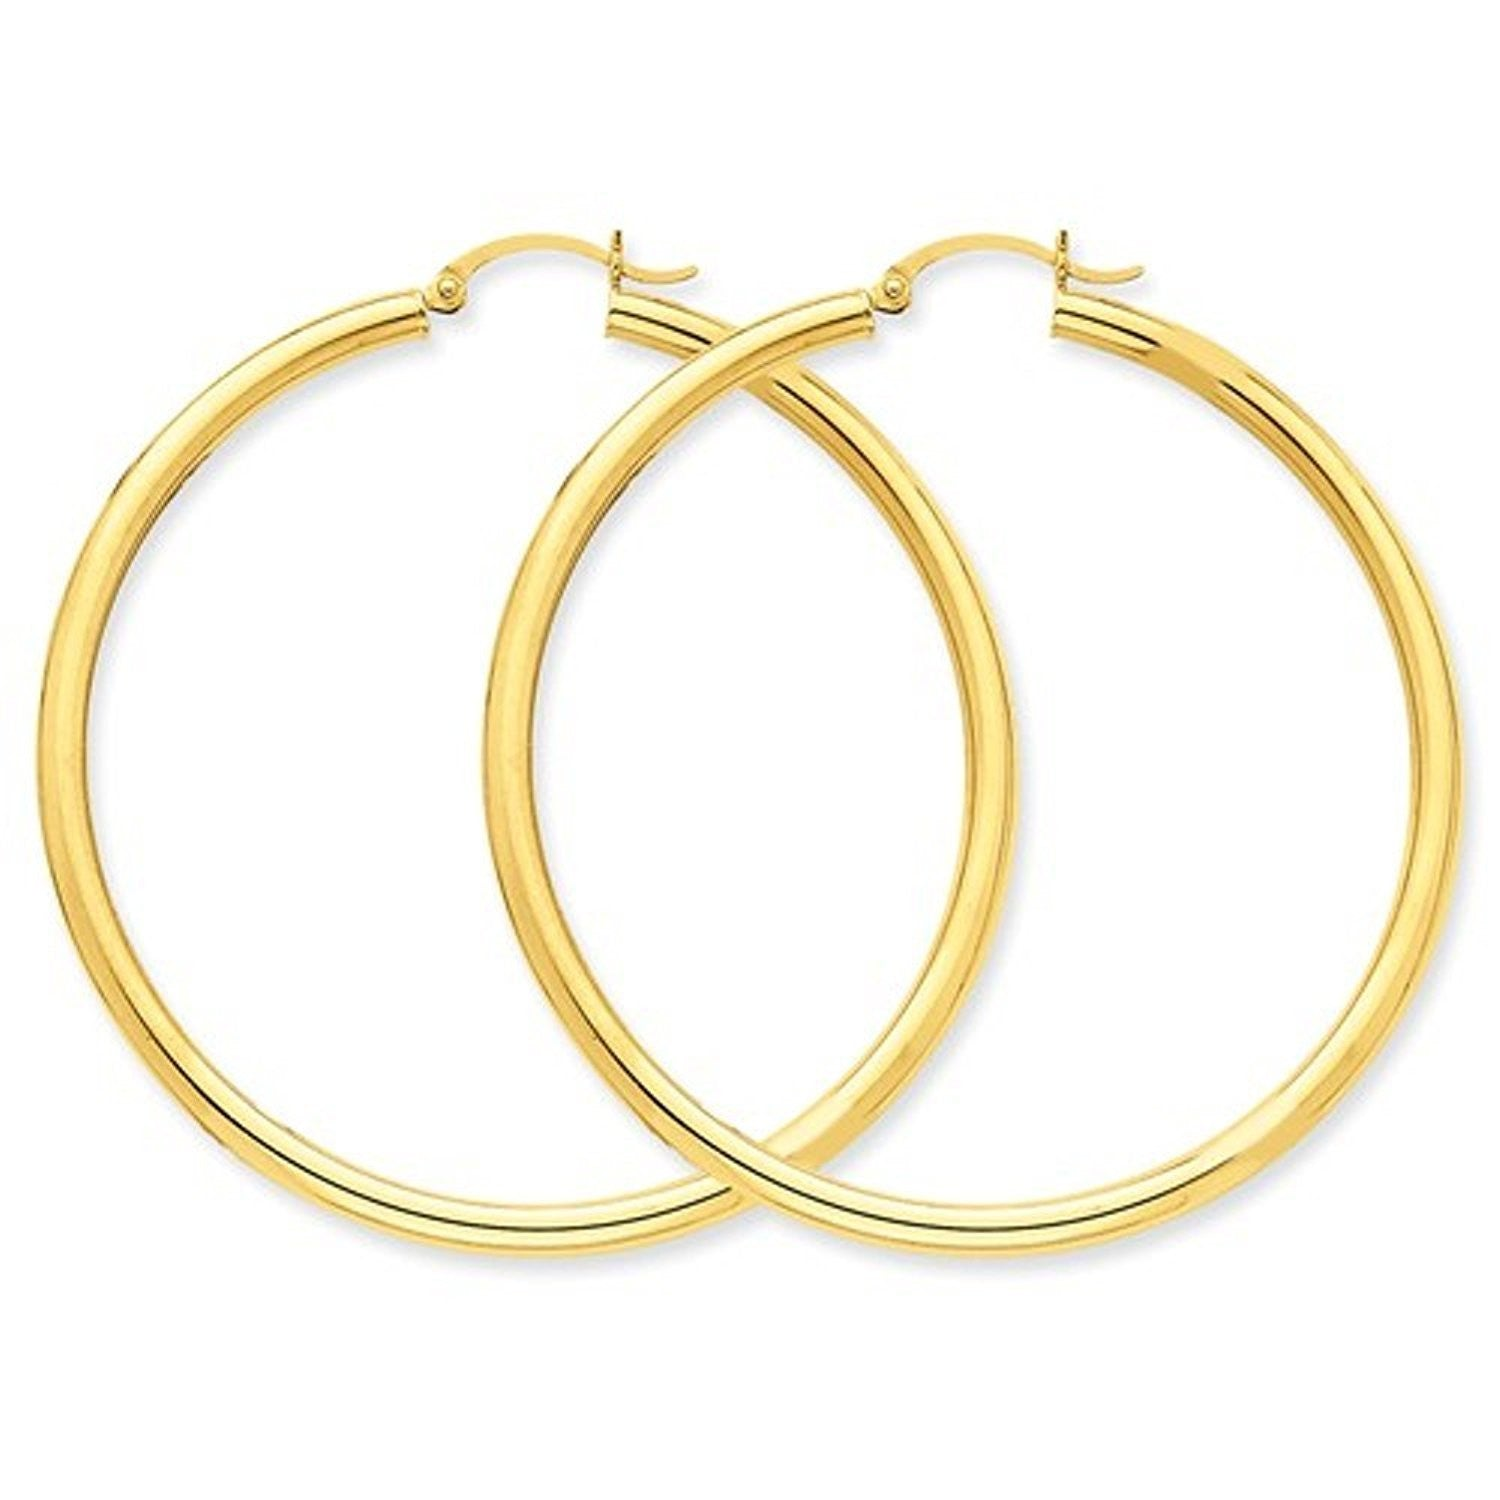 14K Yellow Gold 55mm x 3mm Classic Round Hoop Earrings